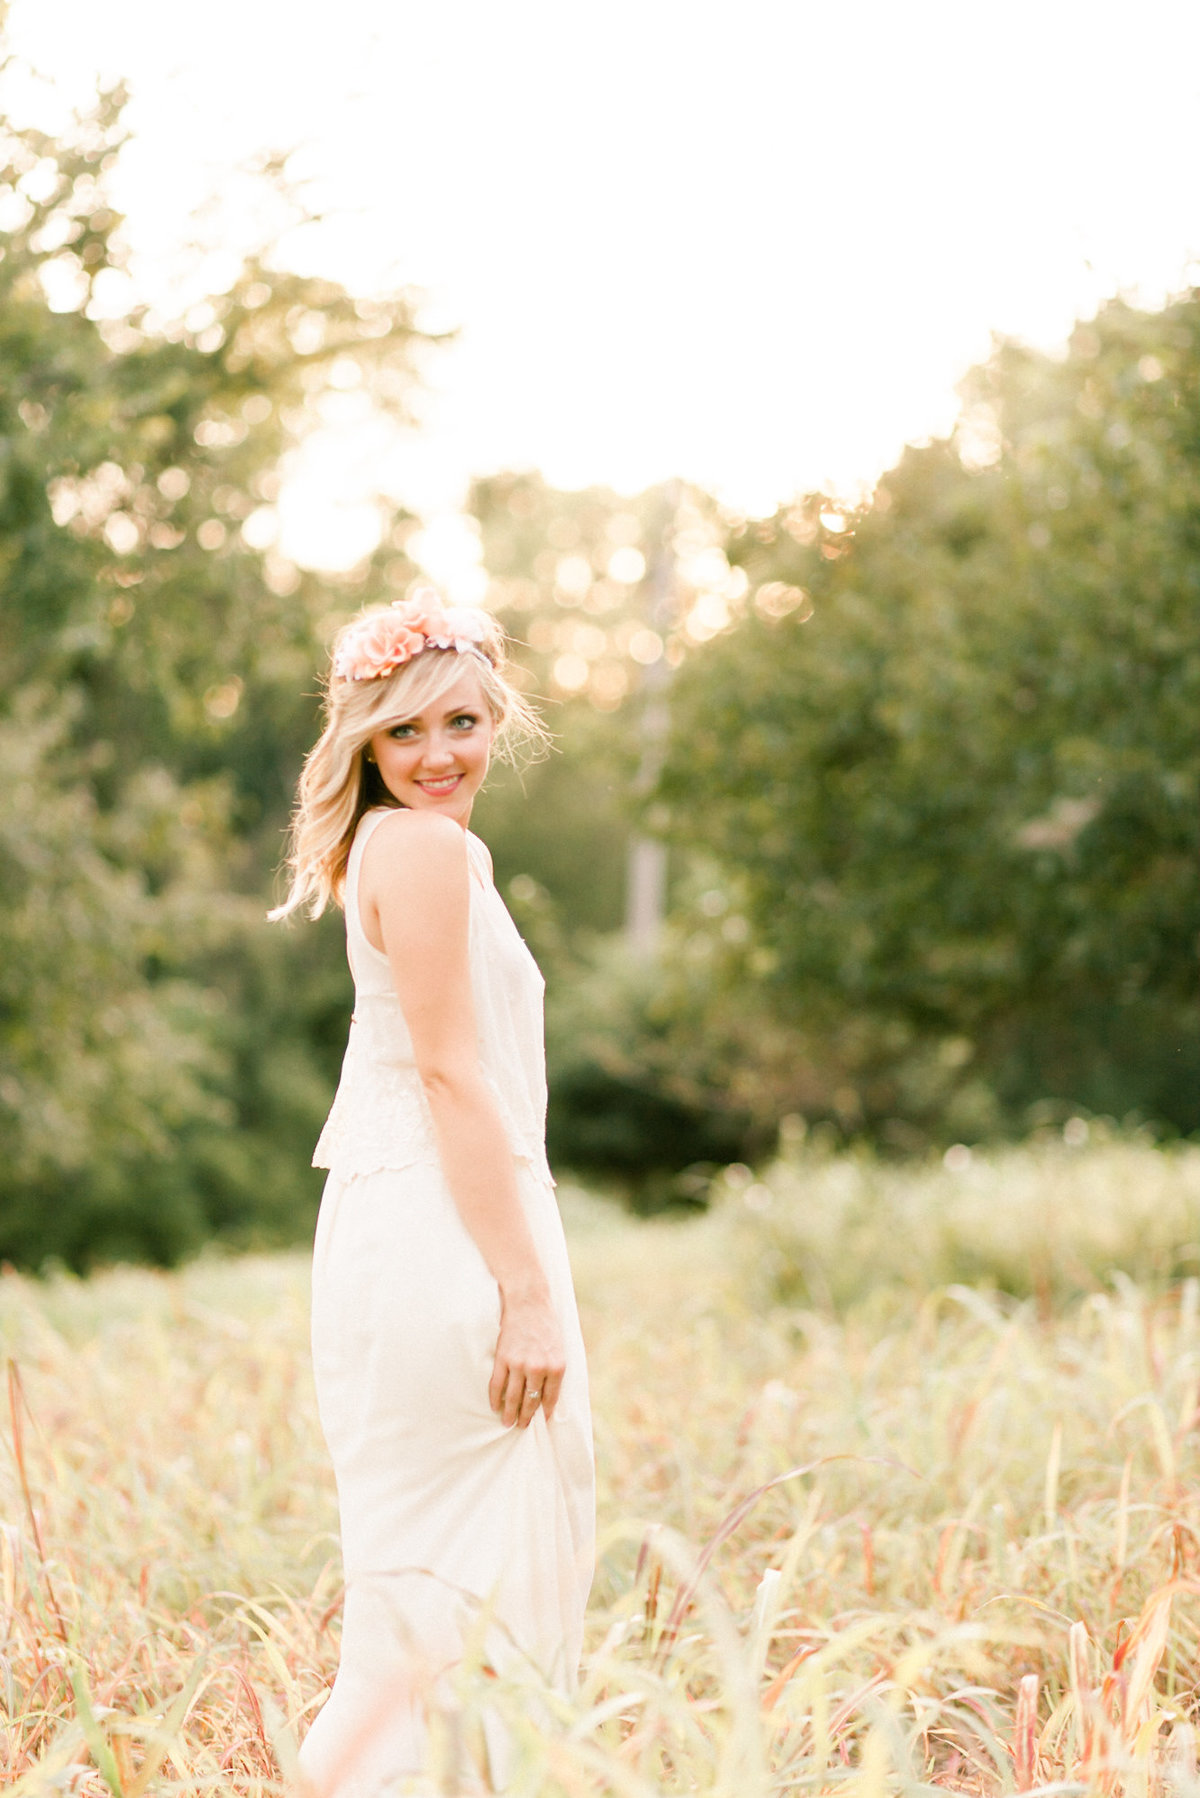 faust-park-saint-louis-missouri-wedding-photos-1014